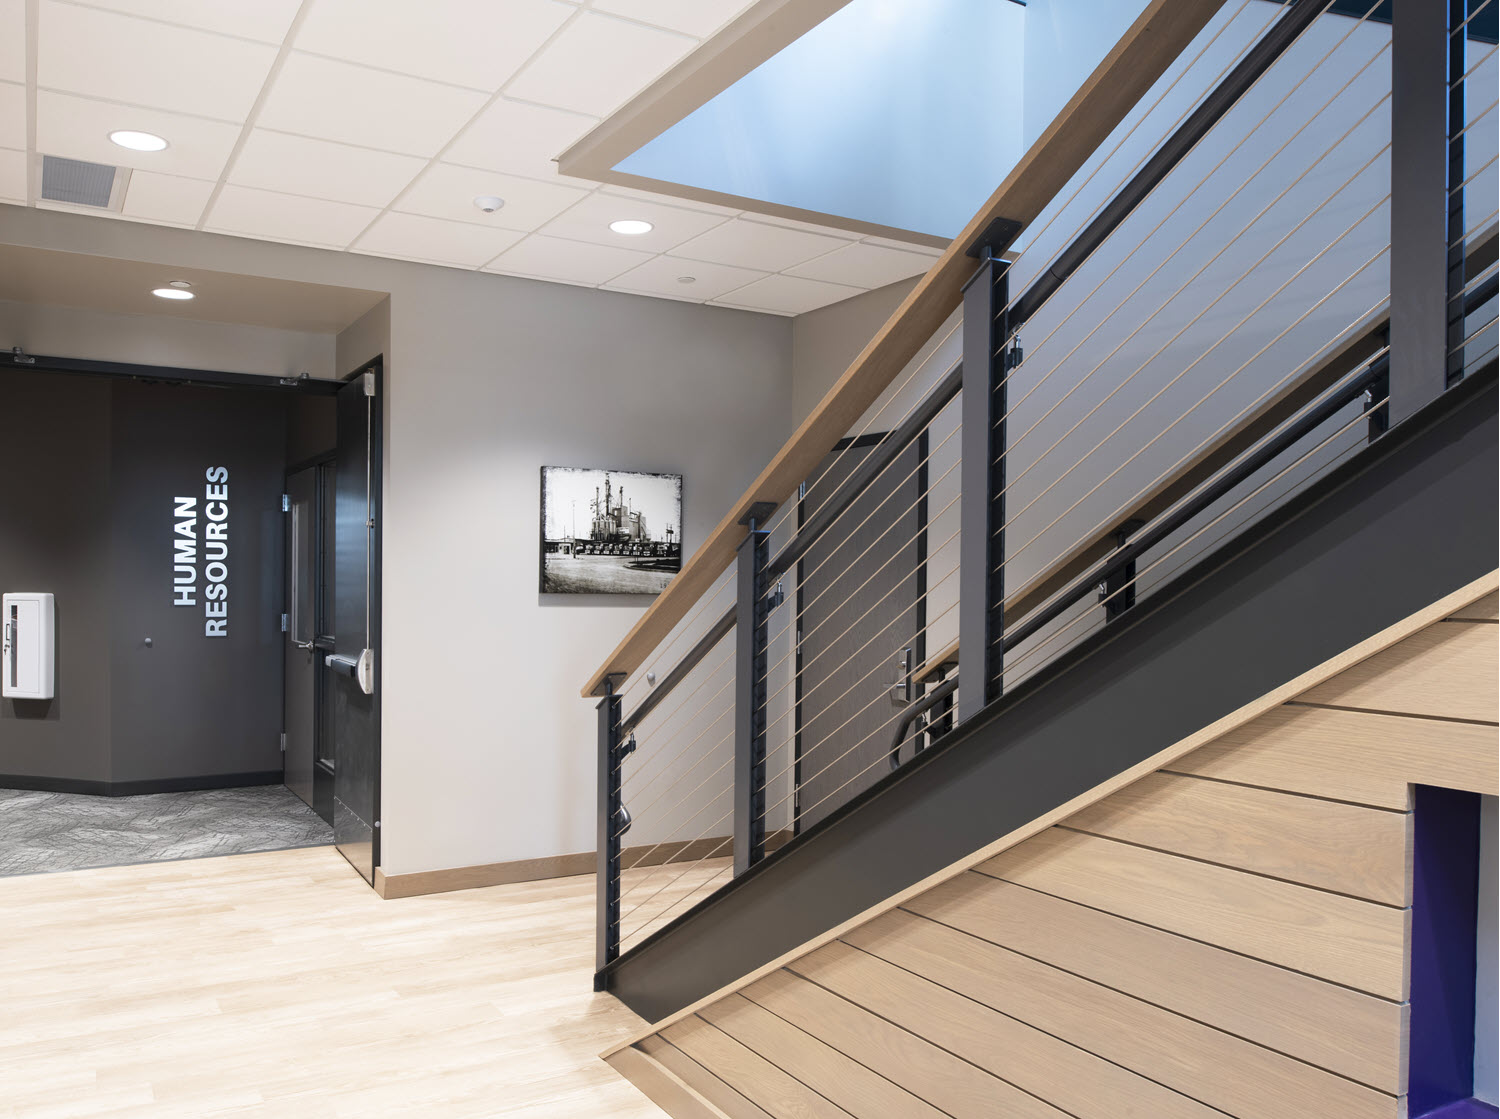 Main lobby entrance staircase with industrial style cable railing system